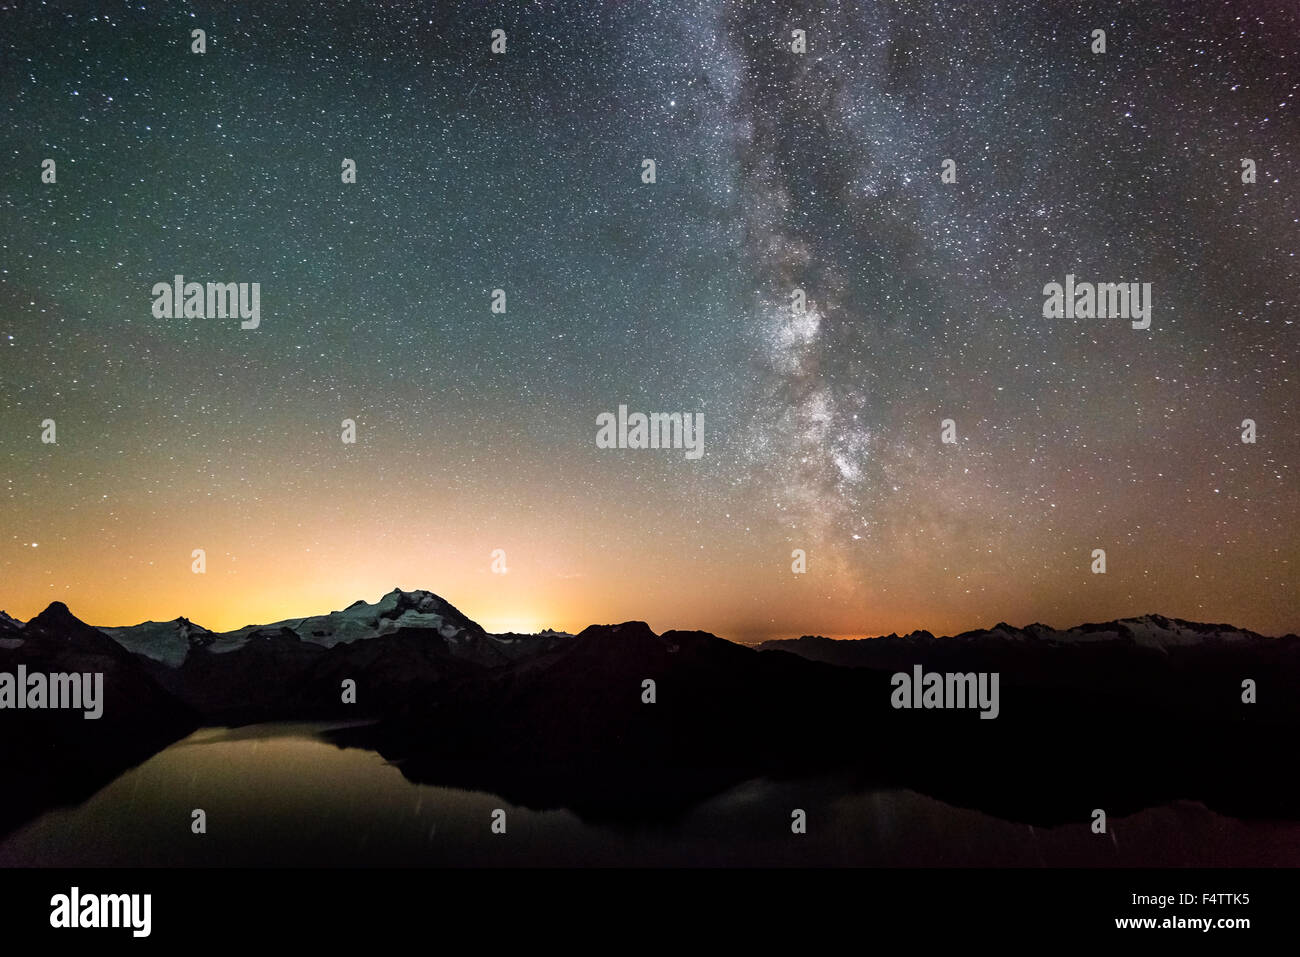 The Milky Way and light pollution from Vancouver looking over Garibaldi Lake, Whistler, BC, Canada. - Stock Image